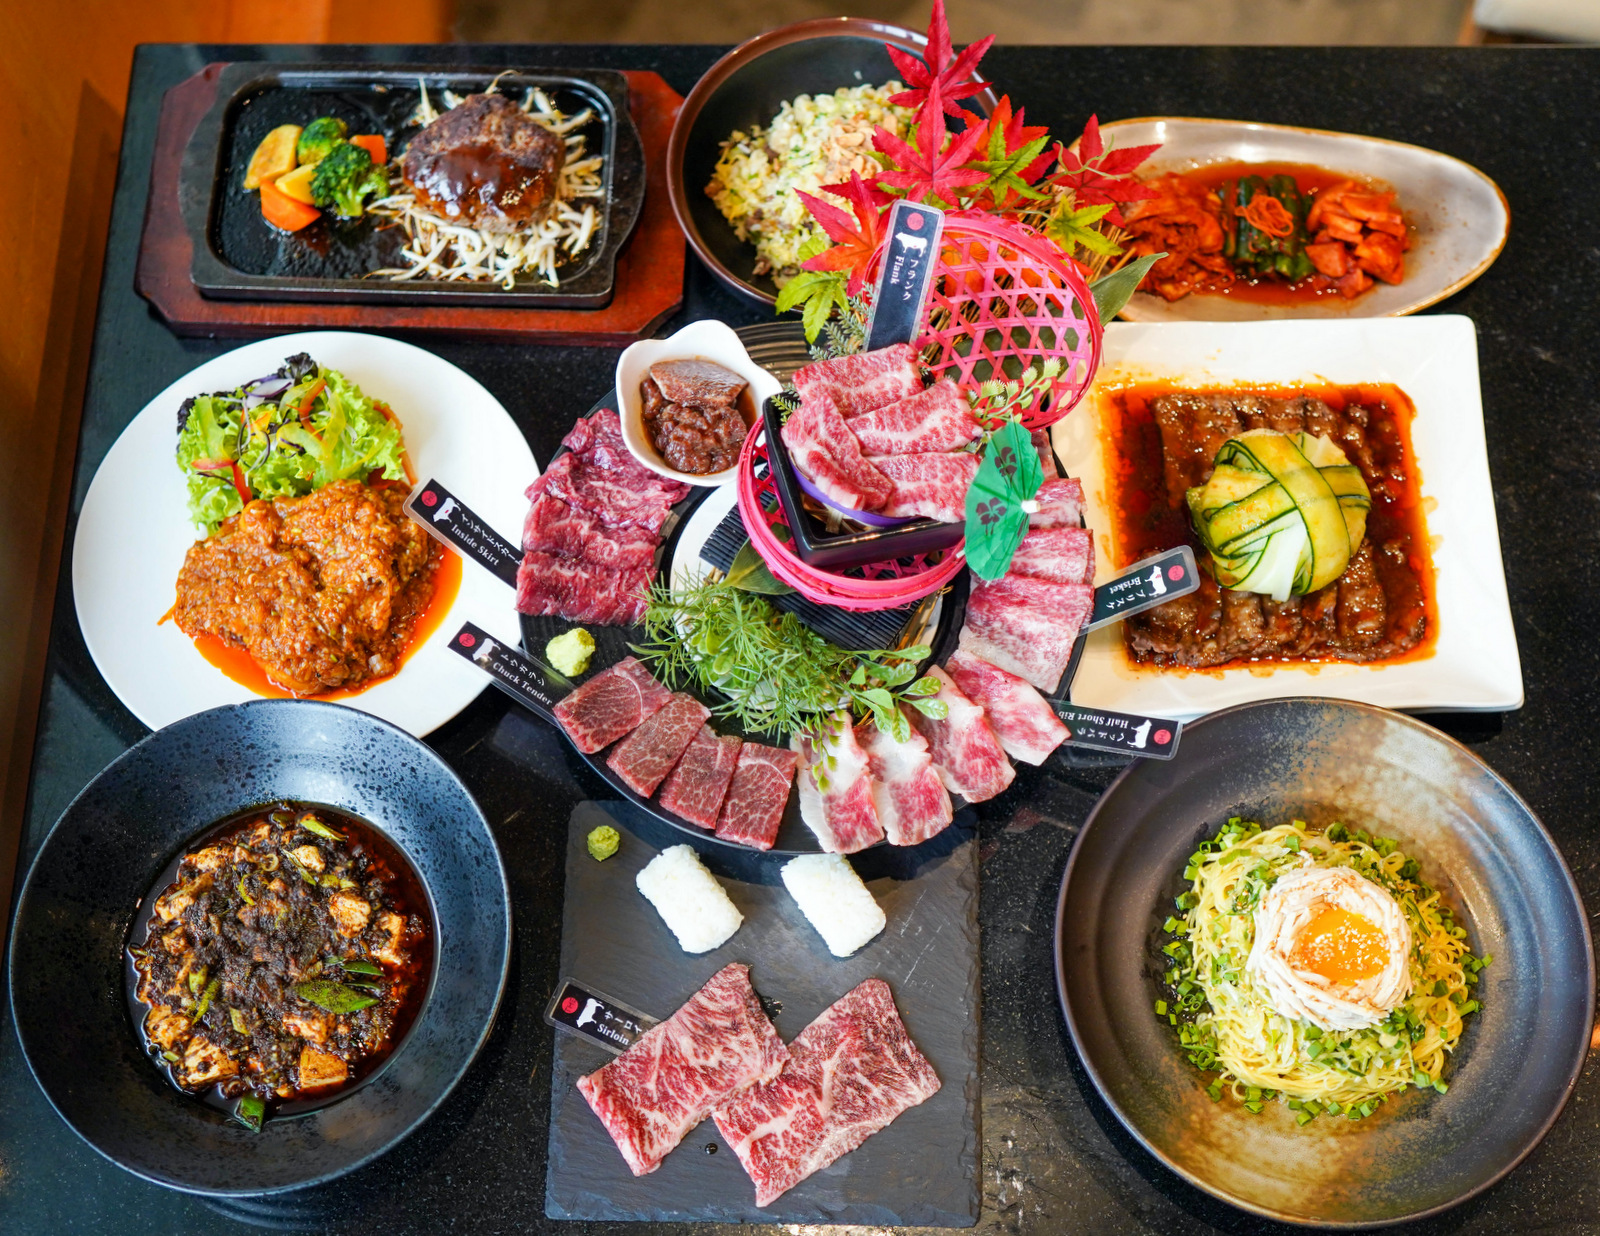 the wagyu restaurant: grilling kl's greatest exploration of japanese a5 wagyu beef